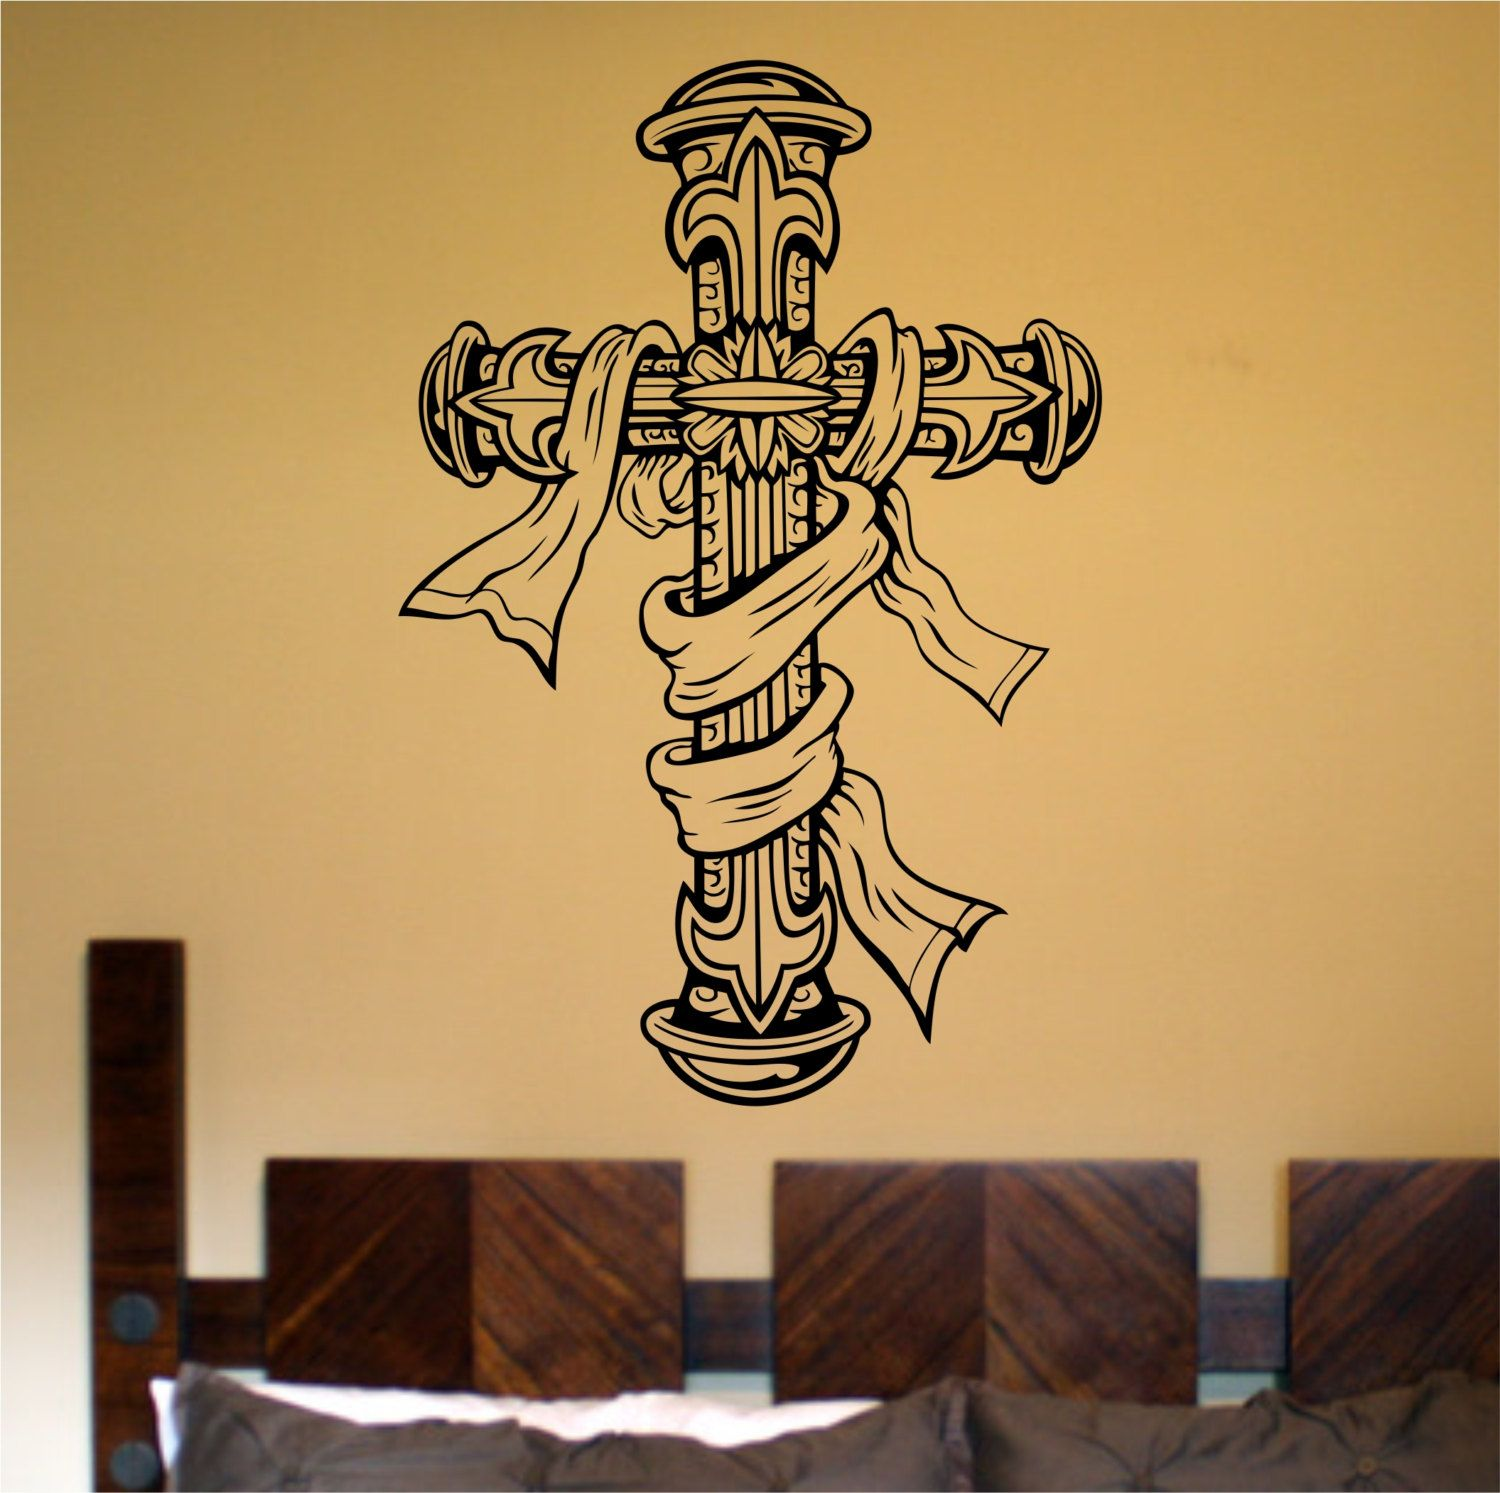 Cool Wall Of Crosses Ideas Images - The Wall Art Decorations ...